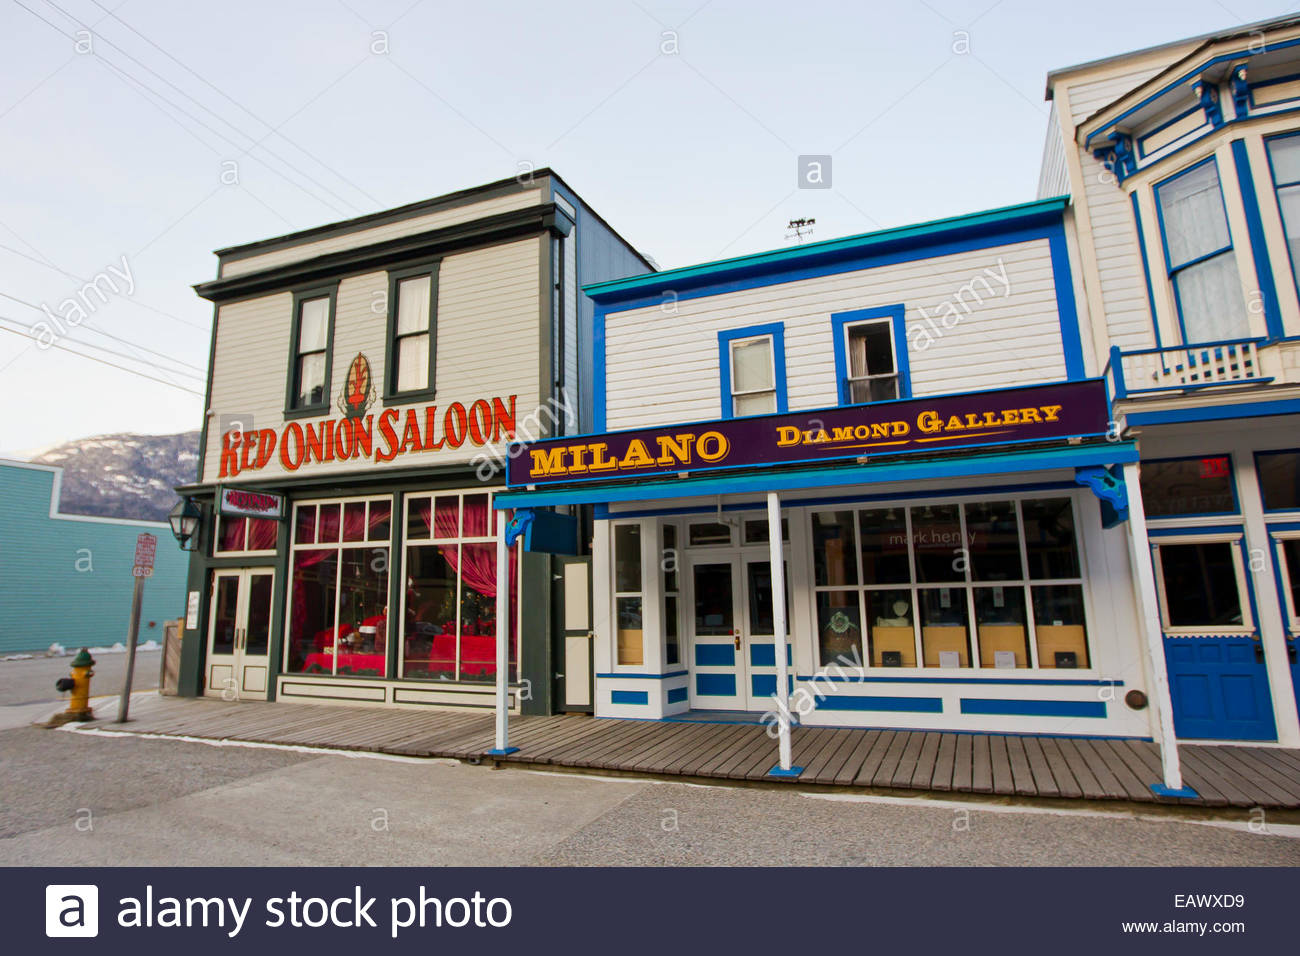 Gift shops and the Red Onion Saloon line a street in downtown Skagway. - Stock Image